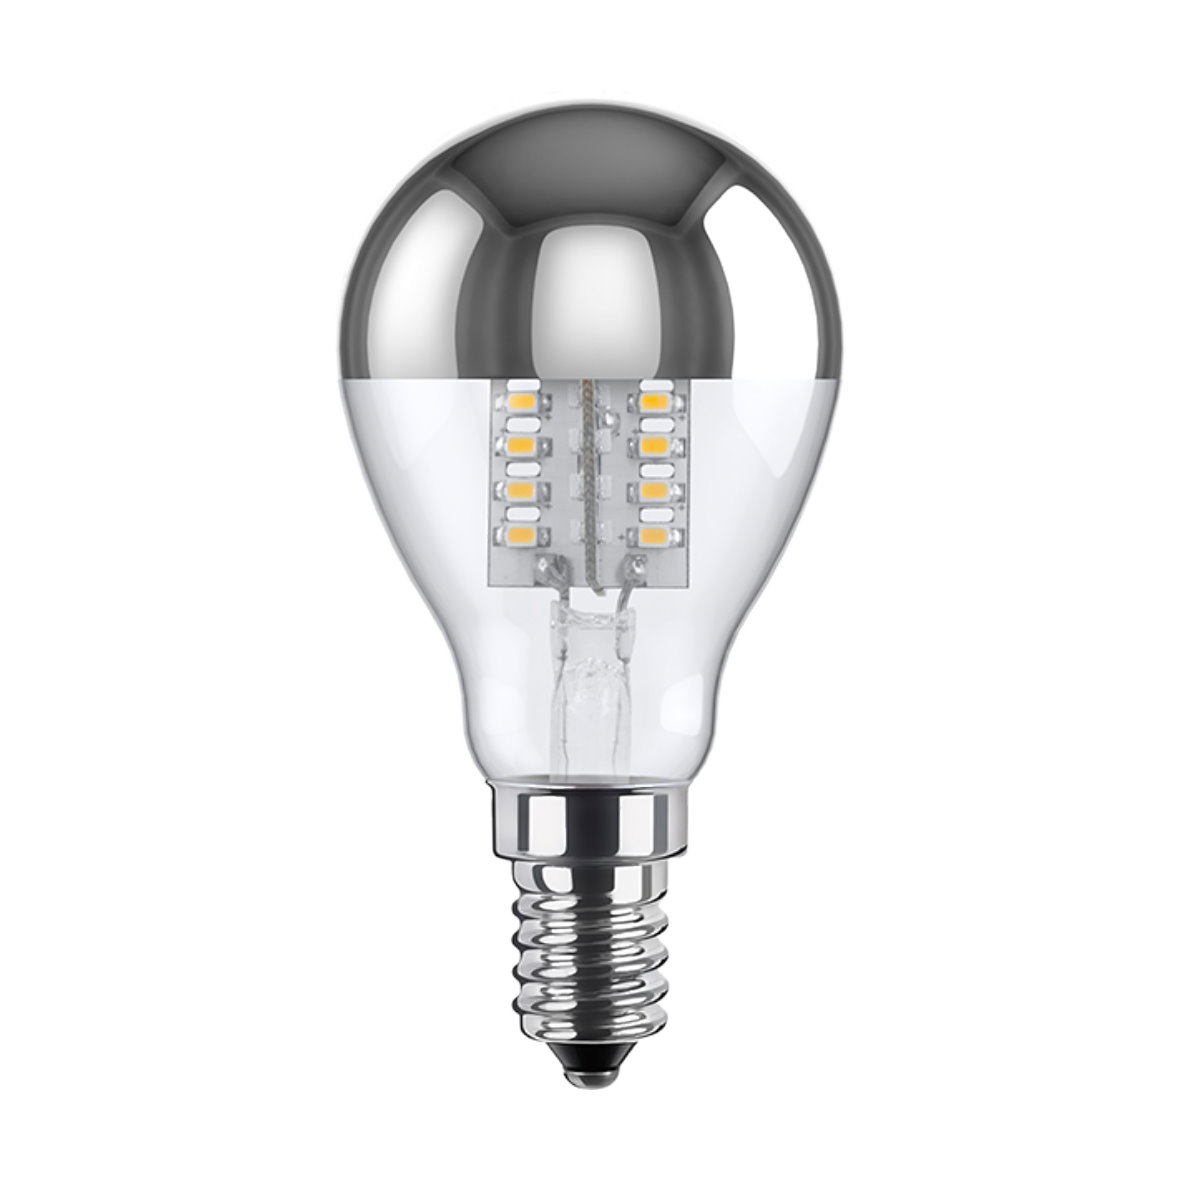 segula led smd birne rund e14 e27 leuchtmittel dimmbar dimmable lampe bulb 230v ebay. Black Bedroom Furniture Sets. Home Design Ideas